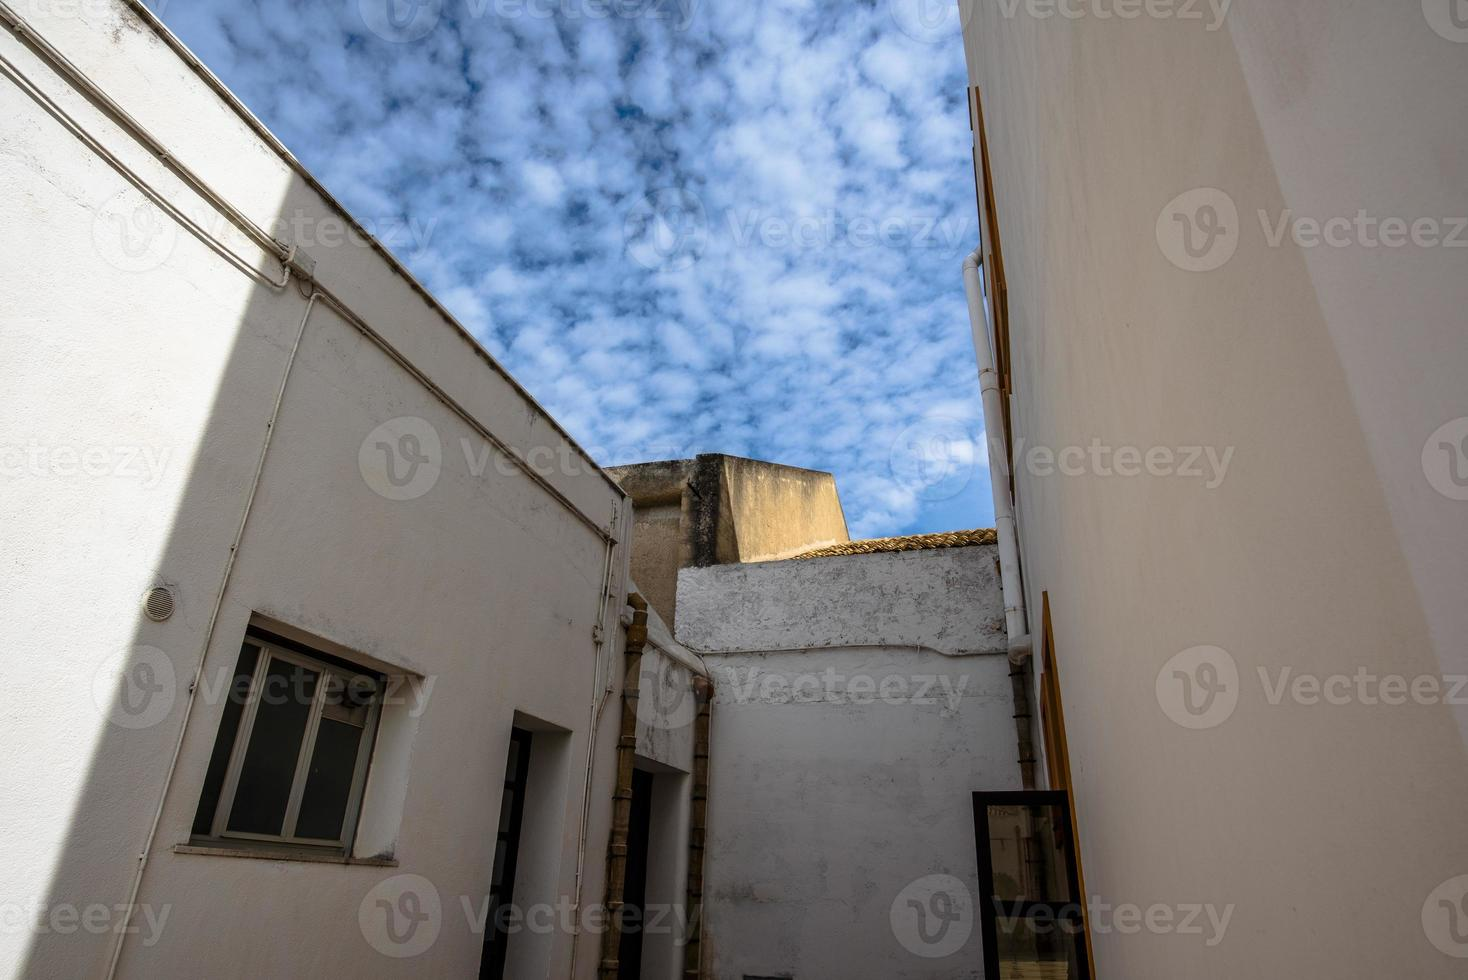 2021 05 29 Marsala geometry and clouds photo